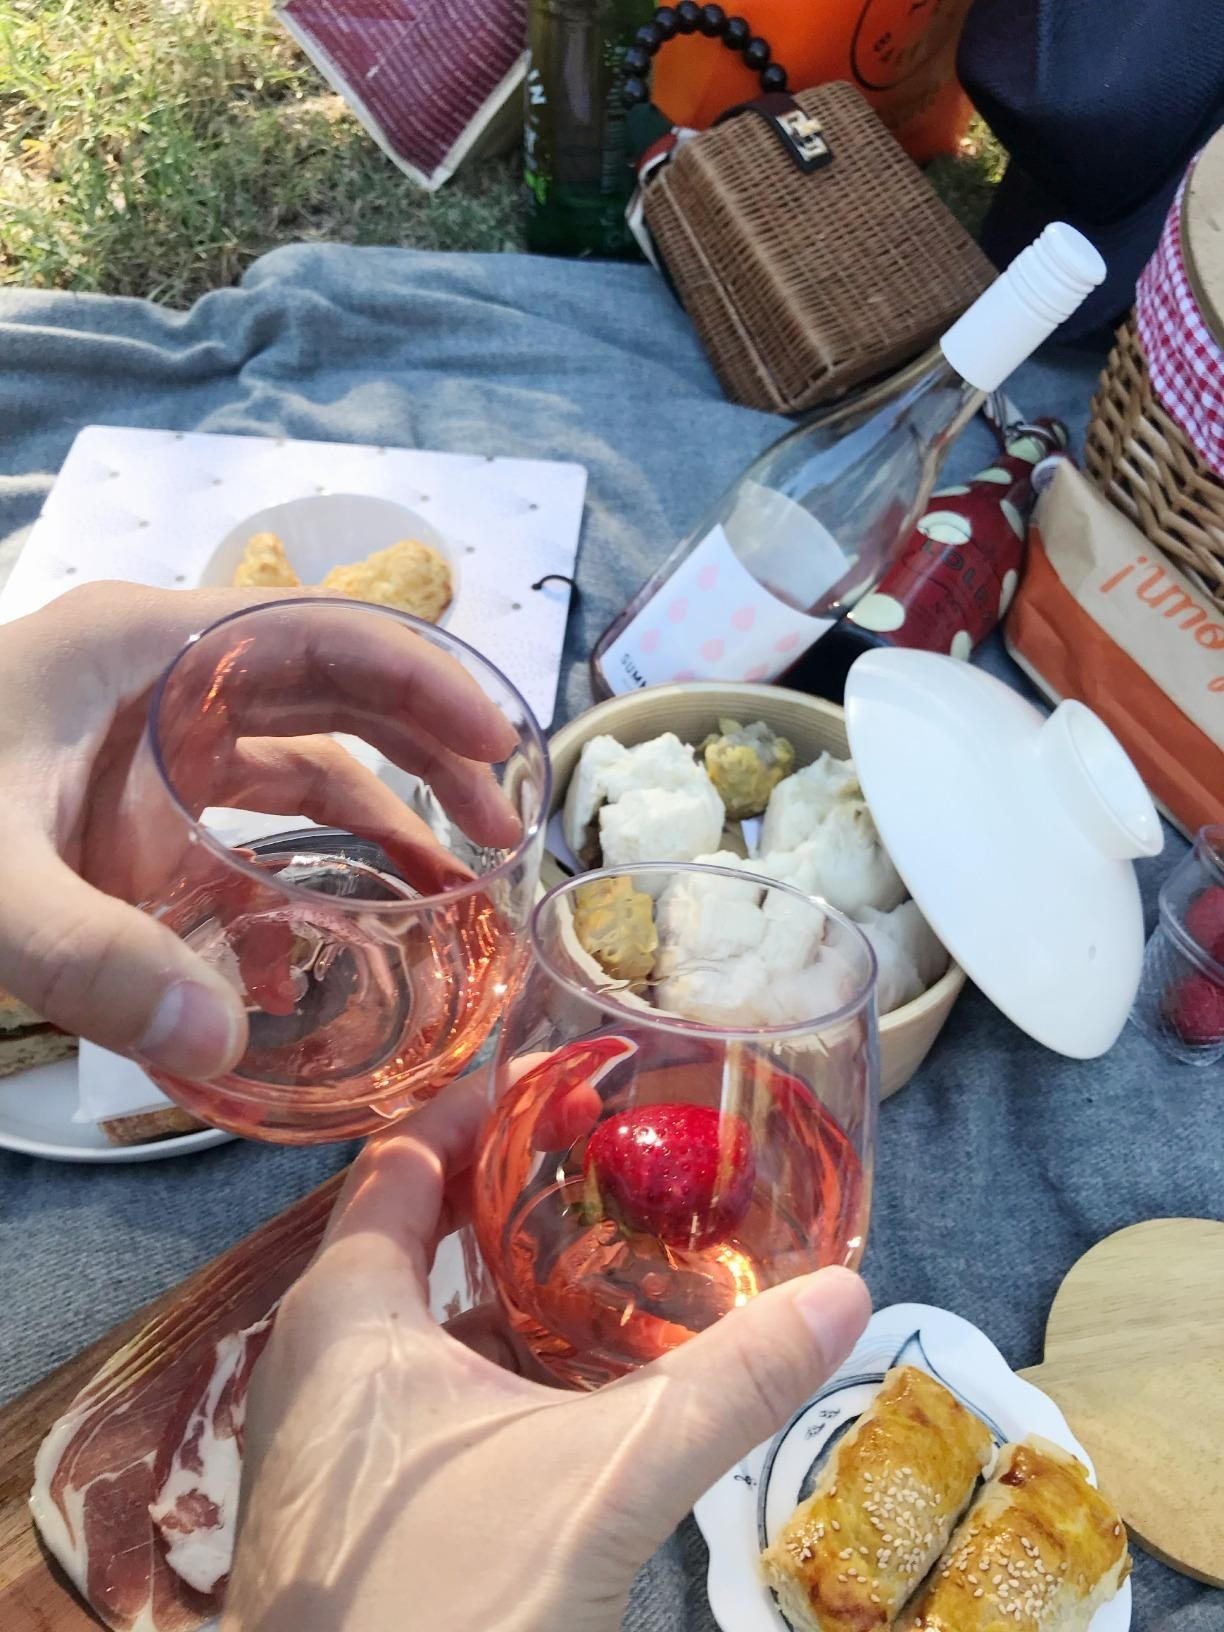 Two people holding the unbreakable wine glasses while picnicking outdoors.